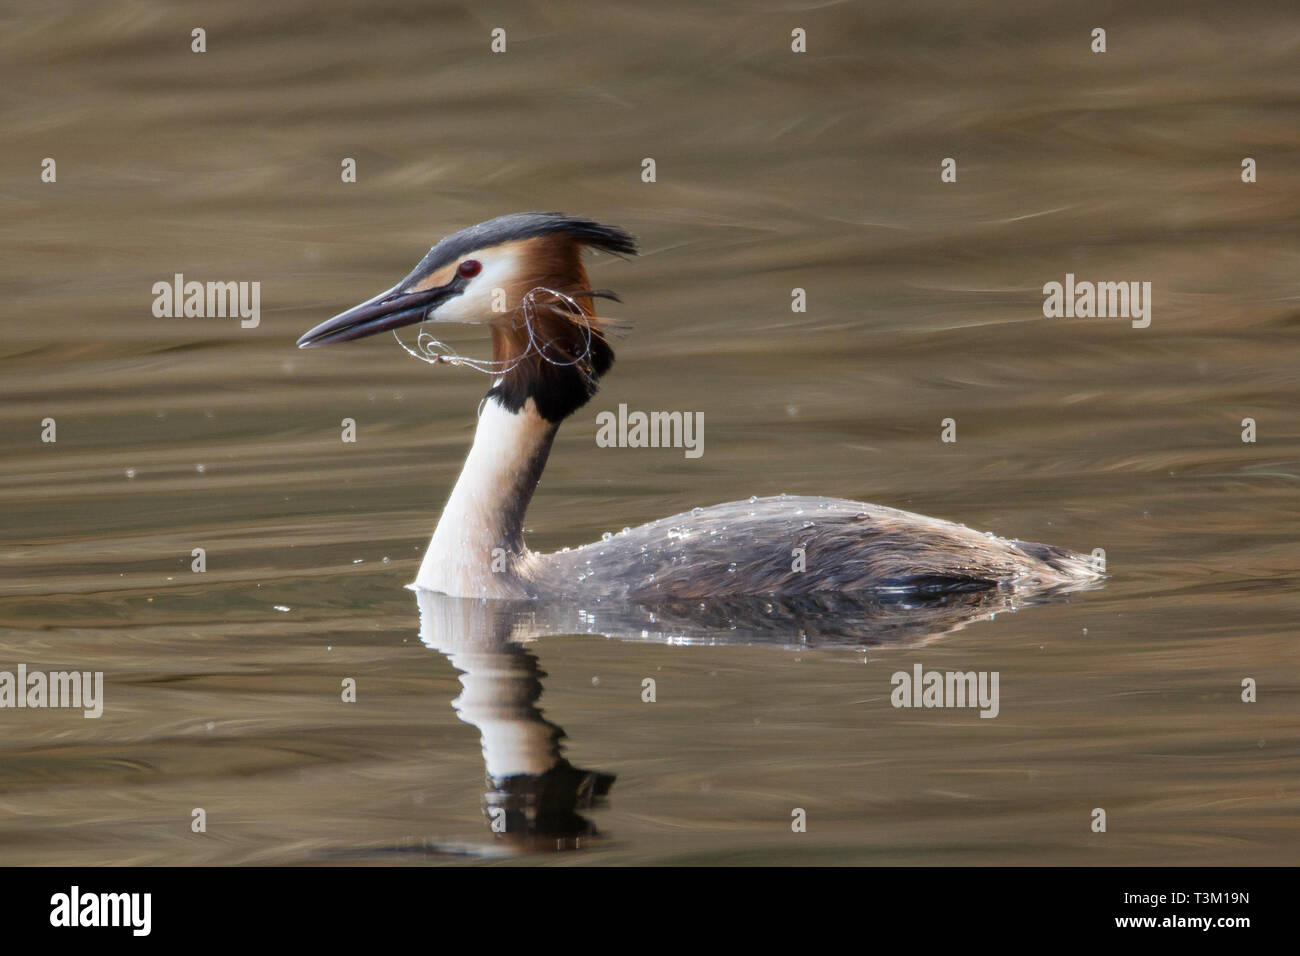 Great Crested Grebe with Fishing Nylon - Stock Image